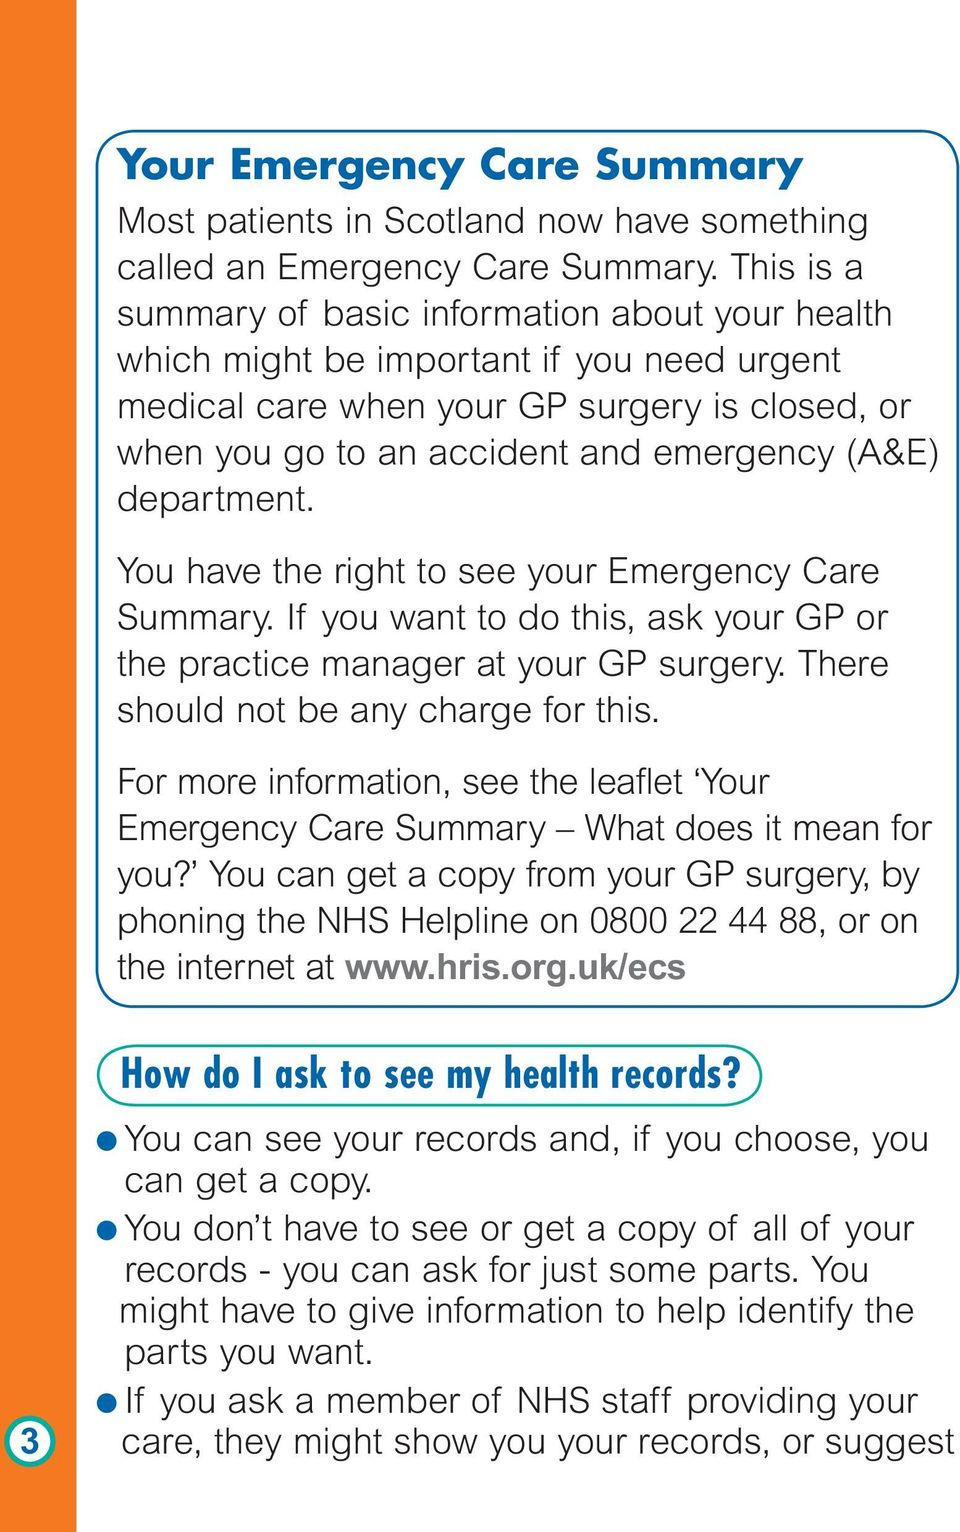 department. You have the right to see your Emergency Care Summary. If you want to do this, ask your GP or the practice manager at your GP surgery. There should not be any charge for this.